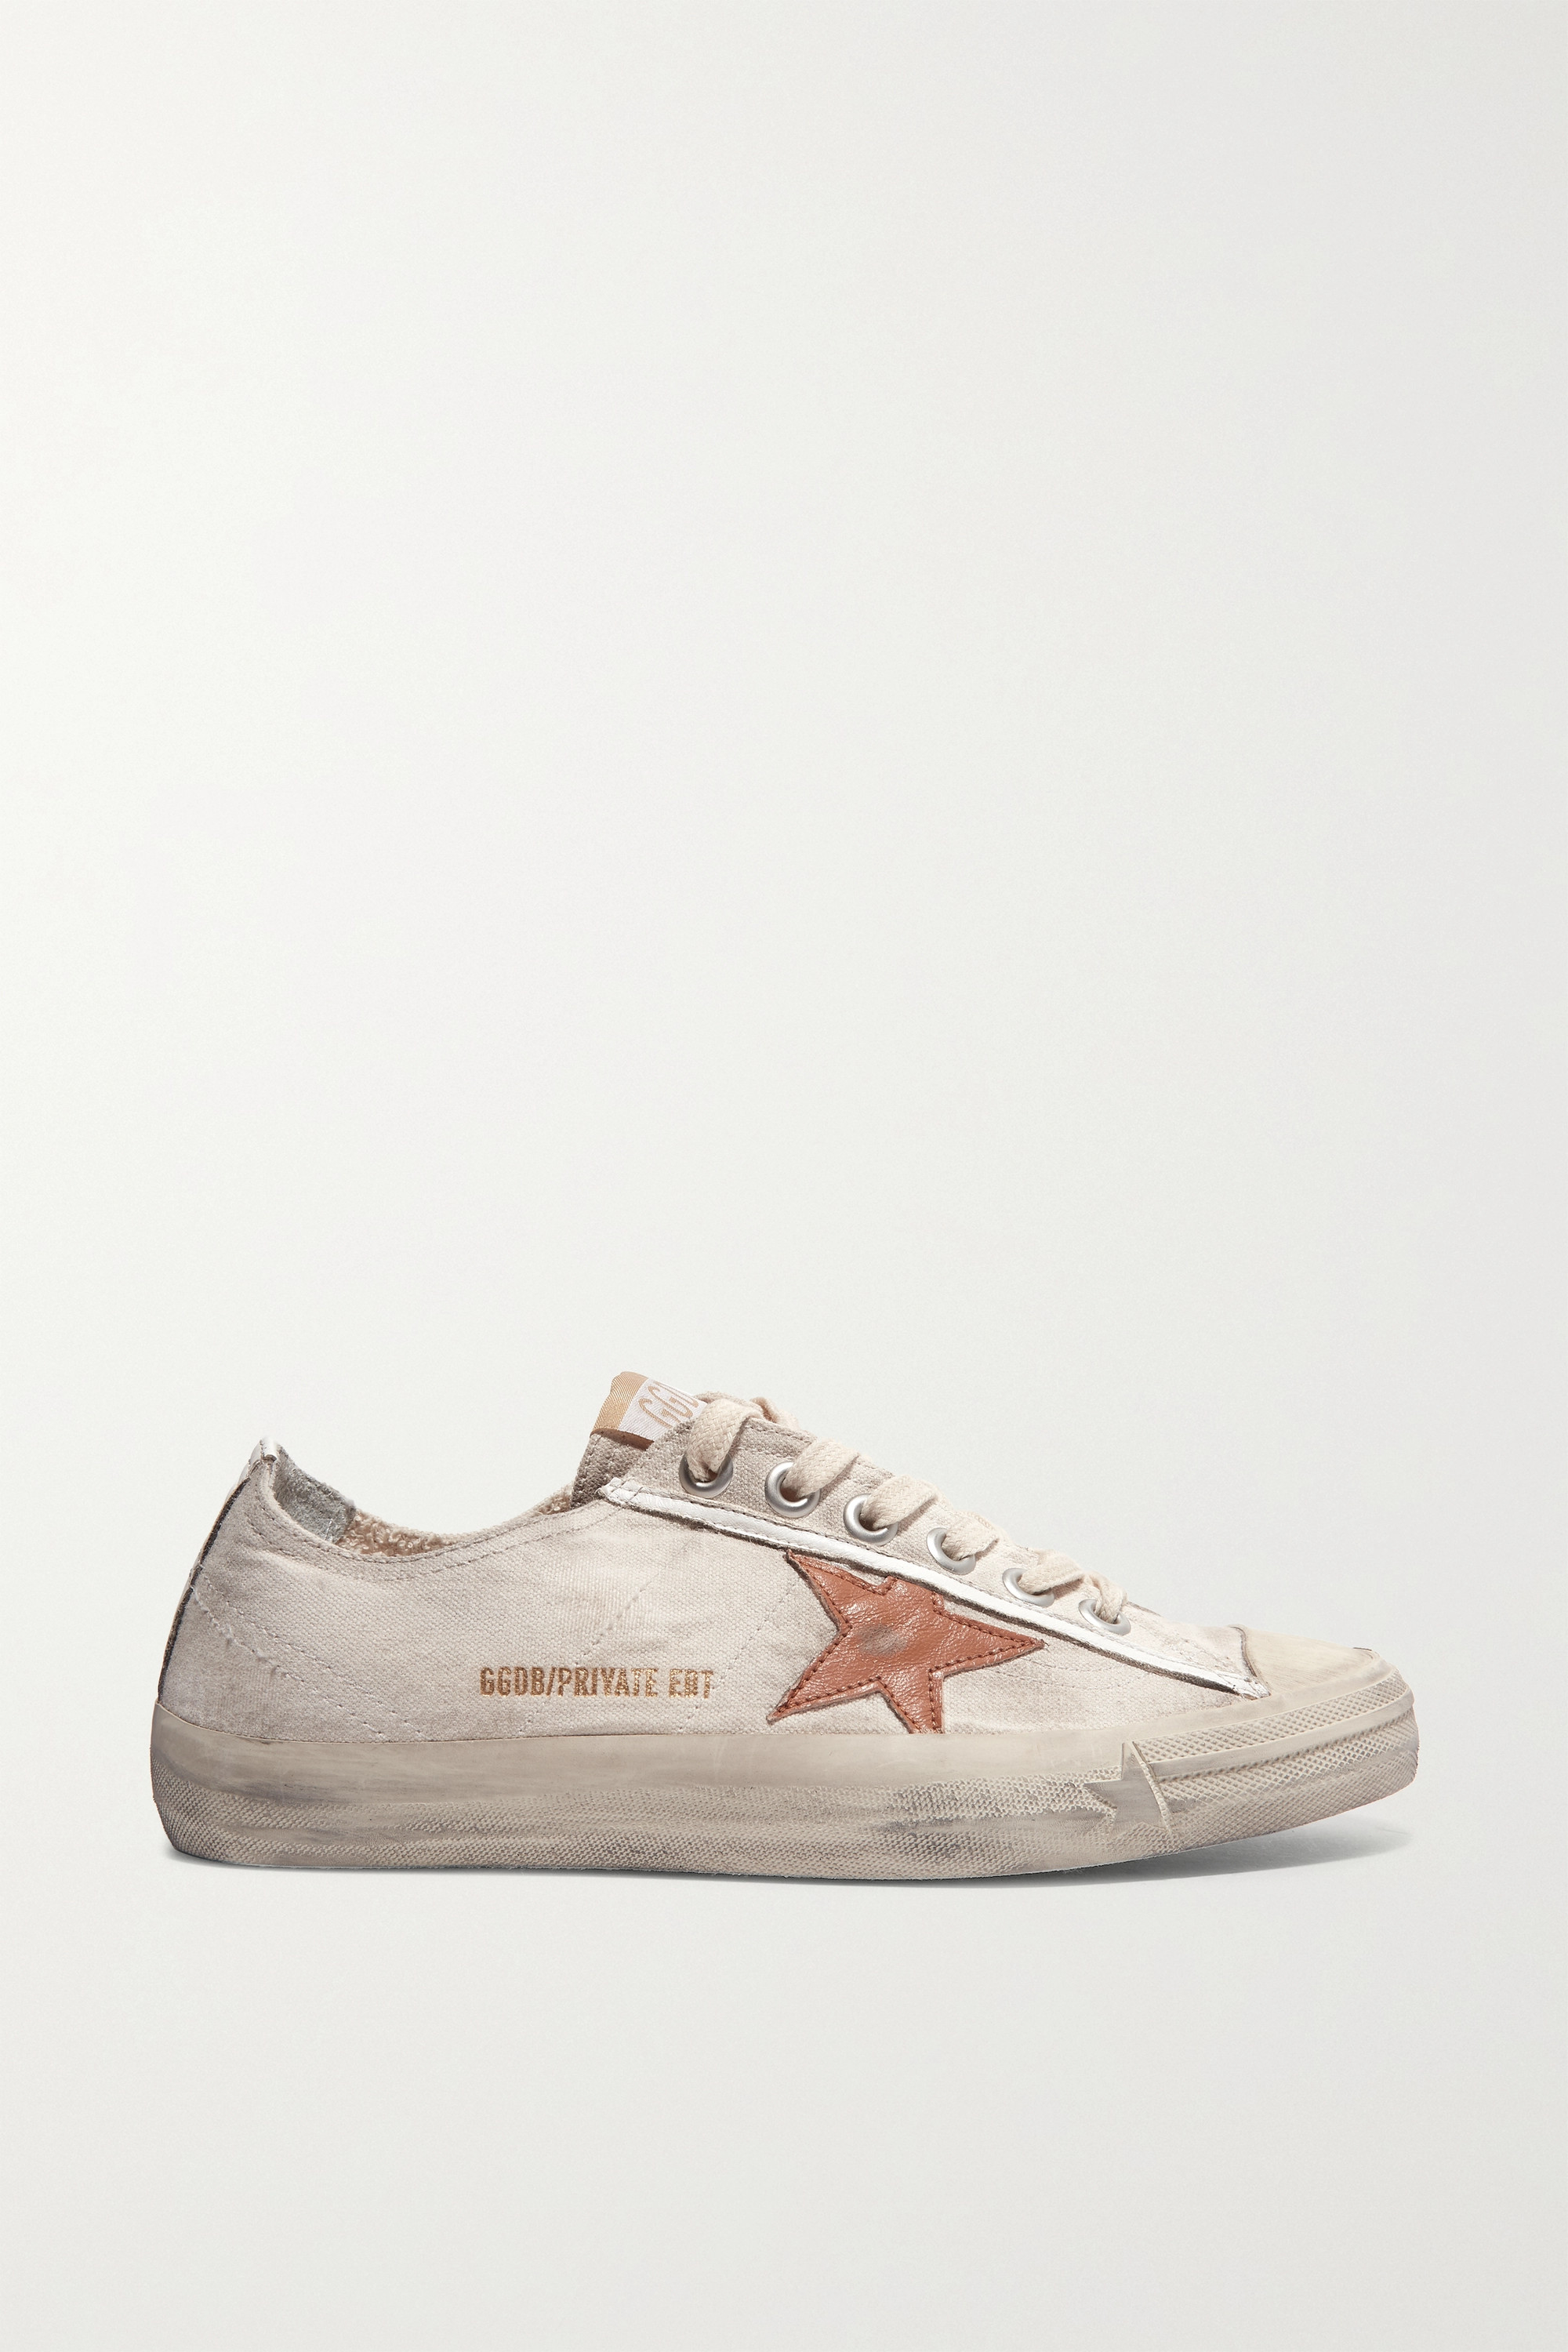 GOLDEN GOOSE V-Star distressed recycled canvas and leather sneakers